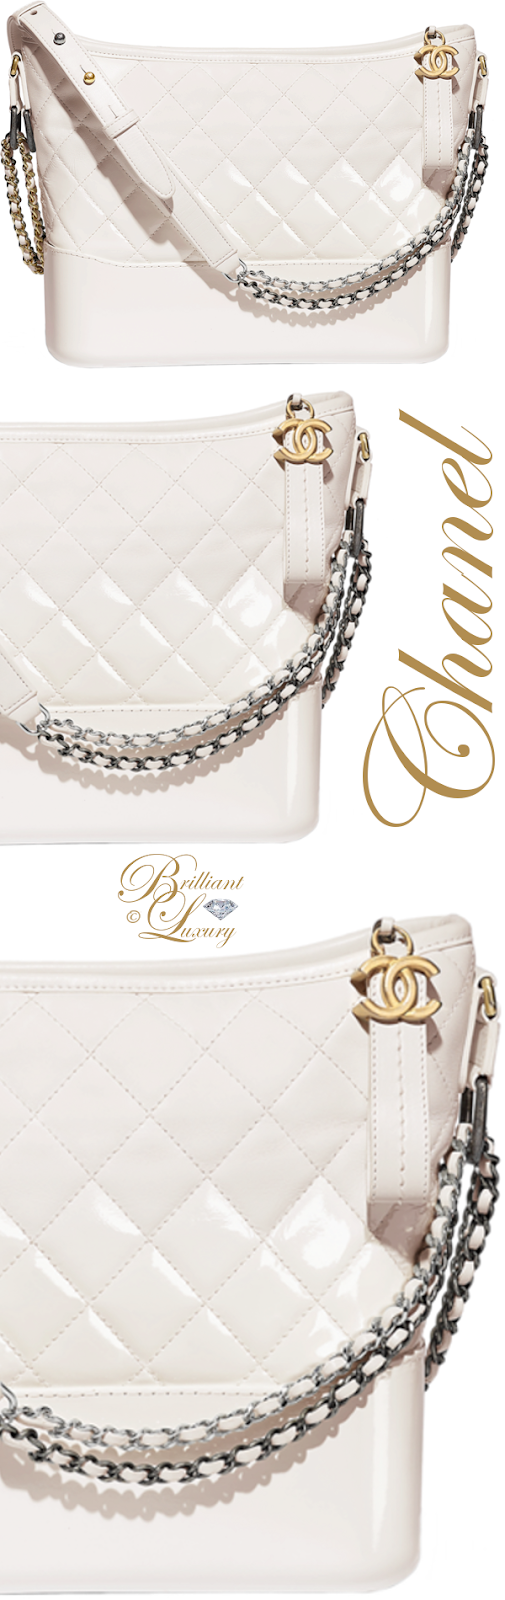 Brilliant Luxury ♦ Chanel white Gabrielle hobo bag